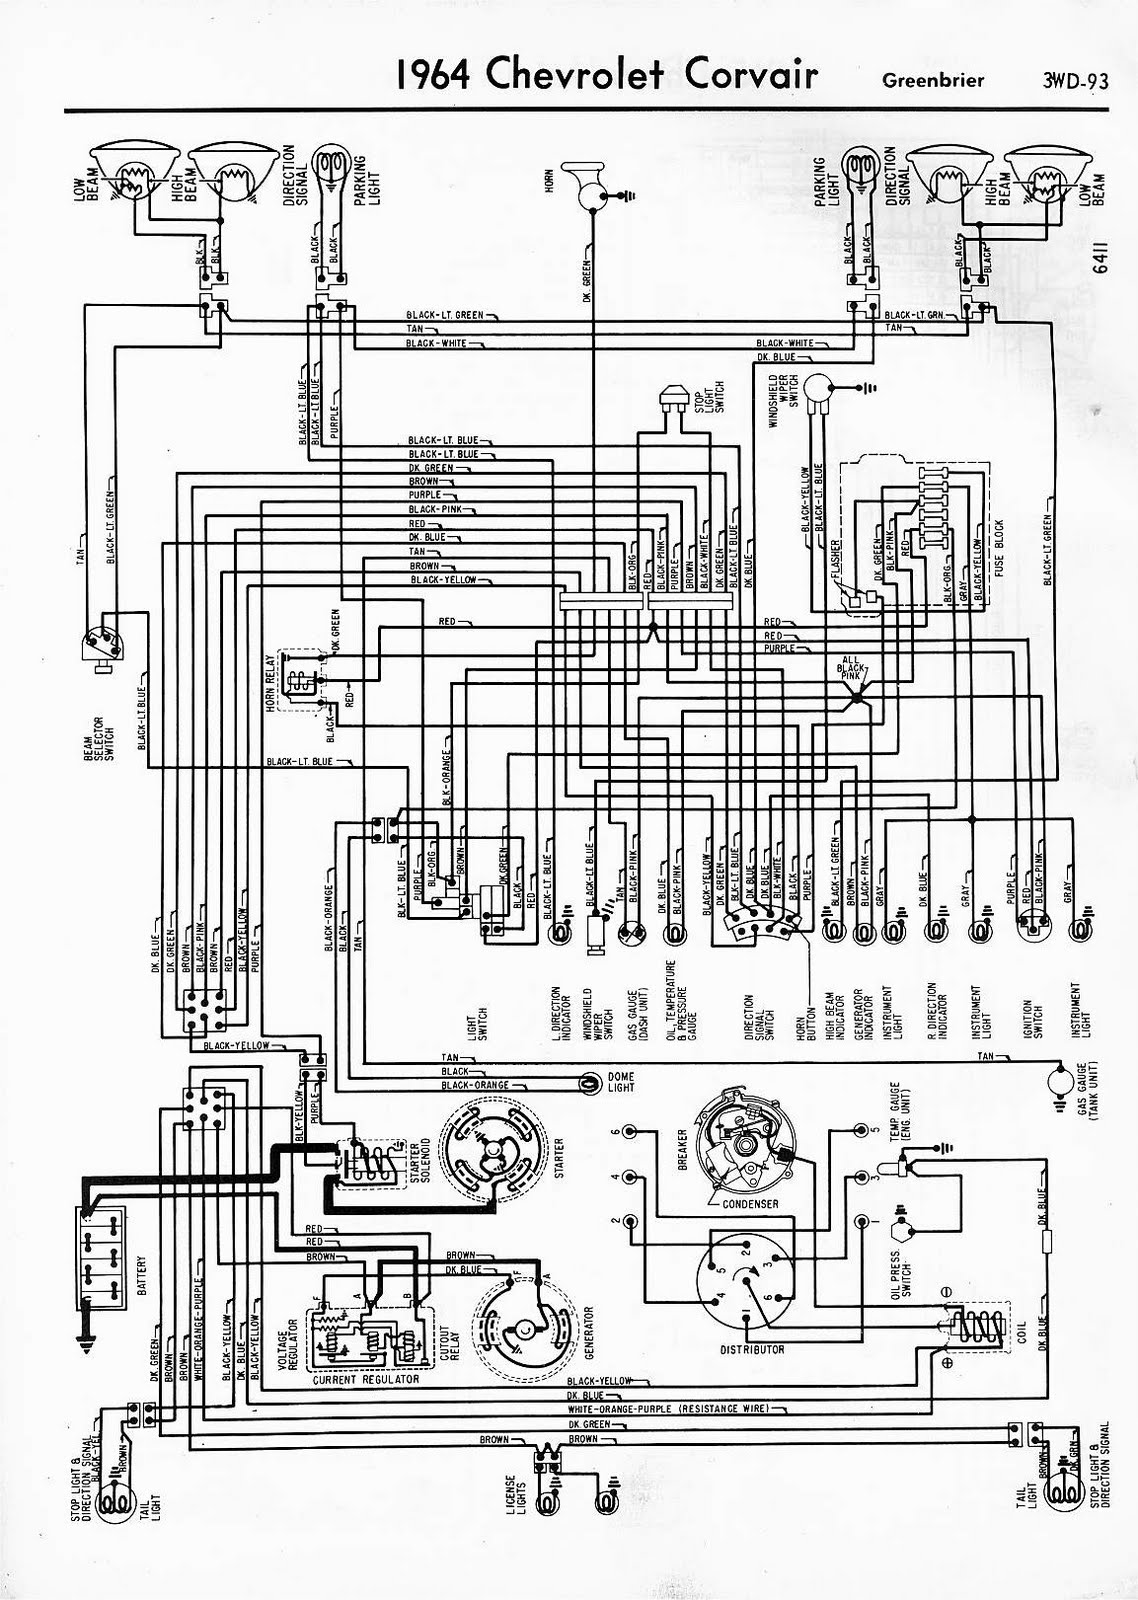 Free Auto Wiring Diagram 1970 Plymouth Belvedere Runner Satellite Electrical Diagrams 1964 Chevrolet Corvair Greenbrier